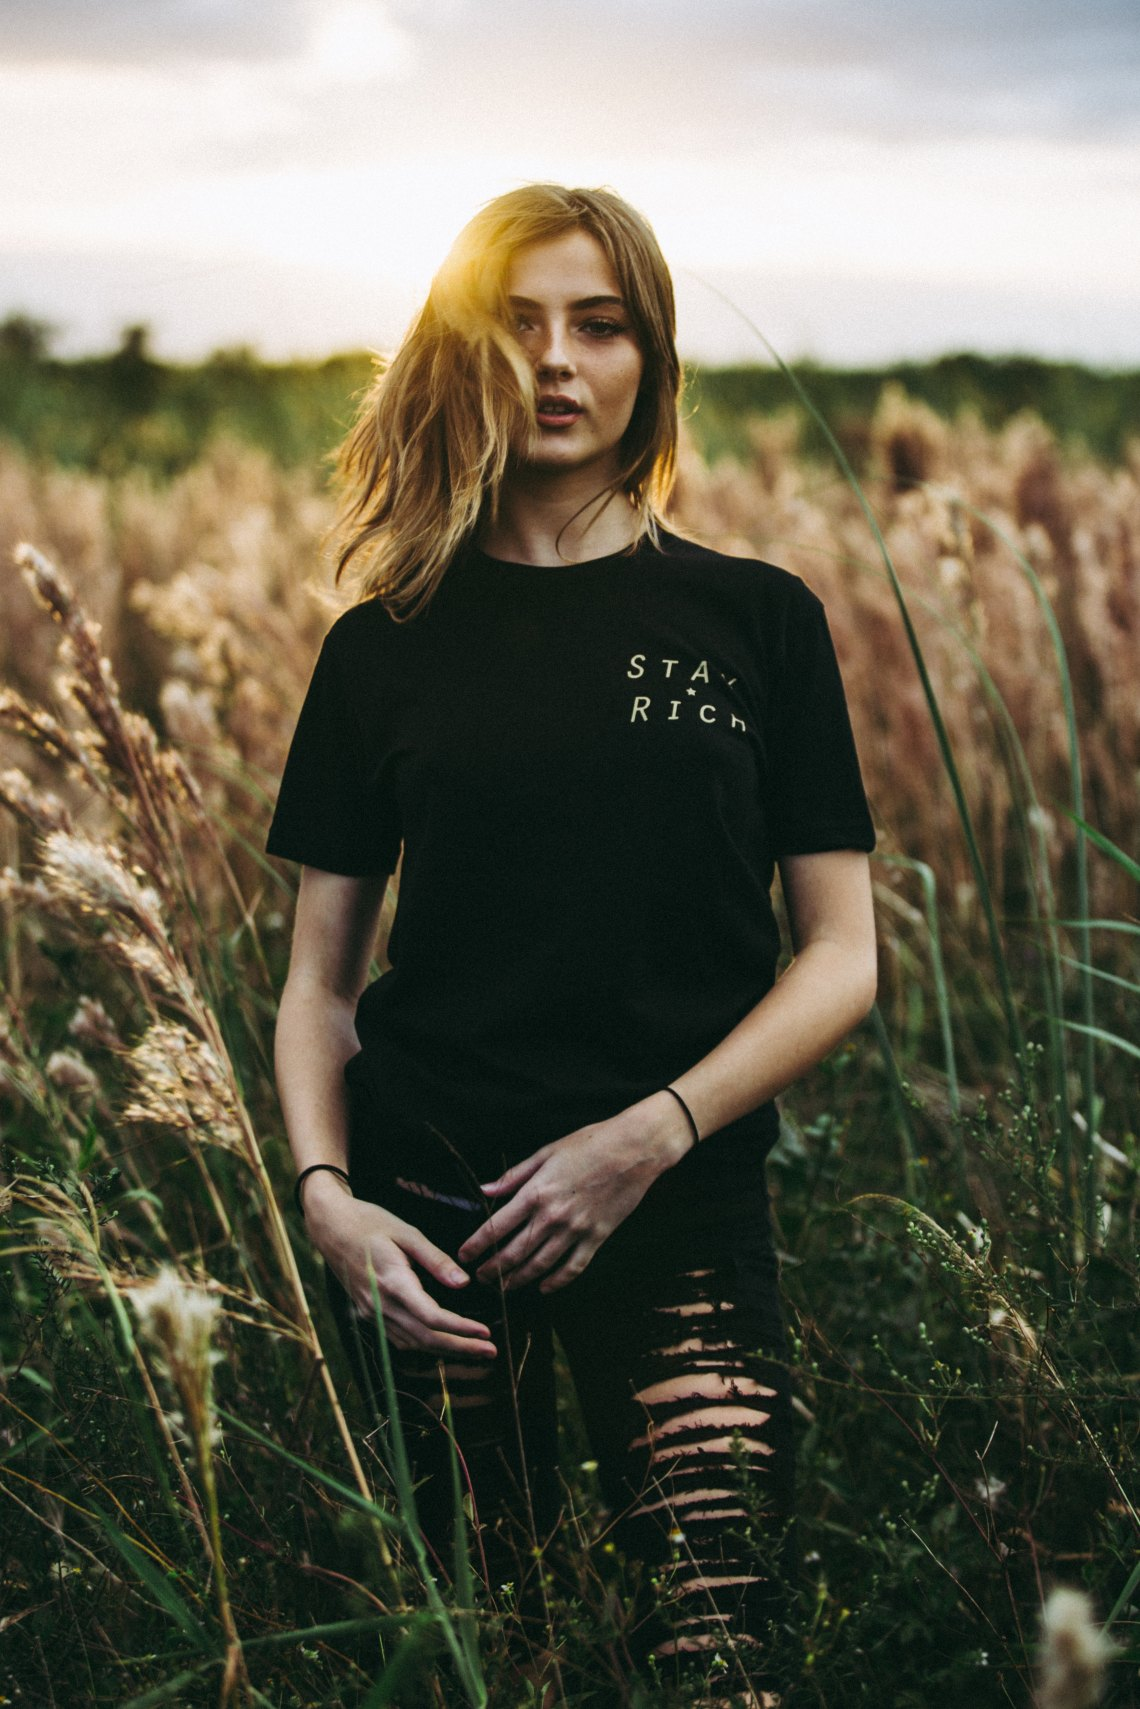 girl standing in a field in a stay rich shirt